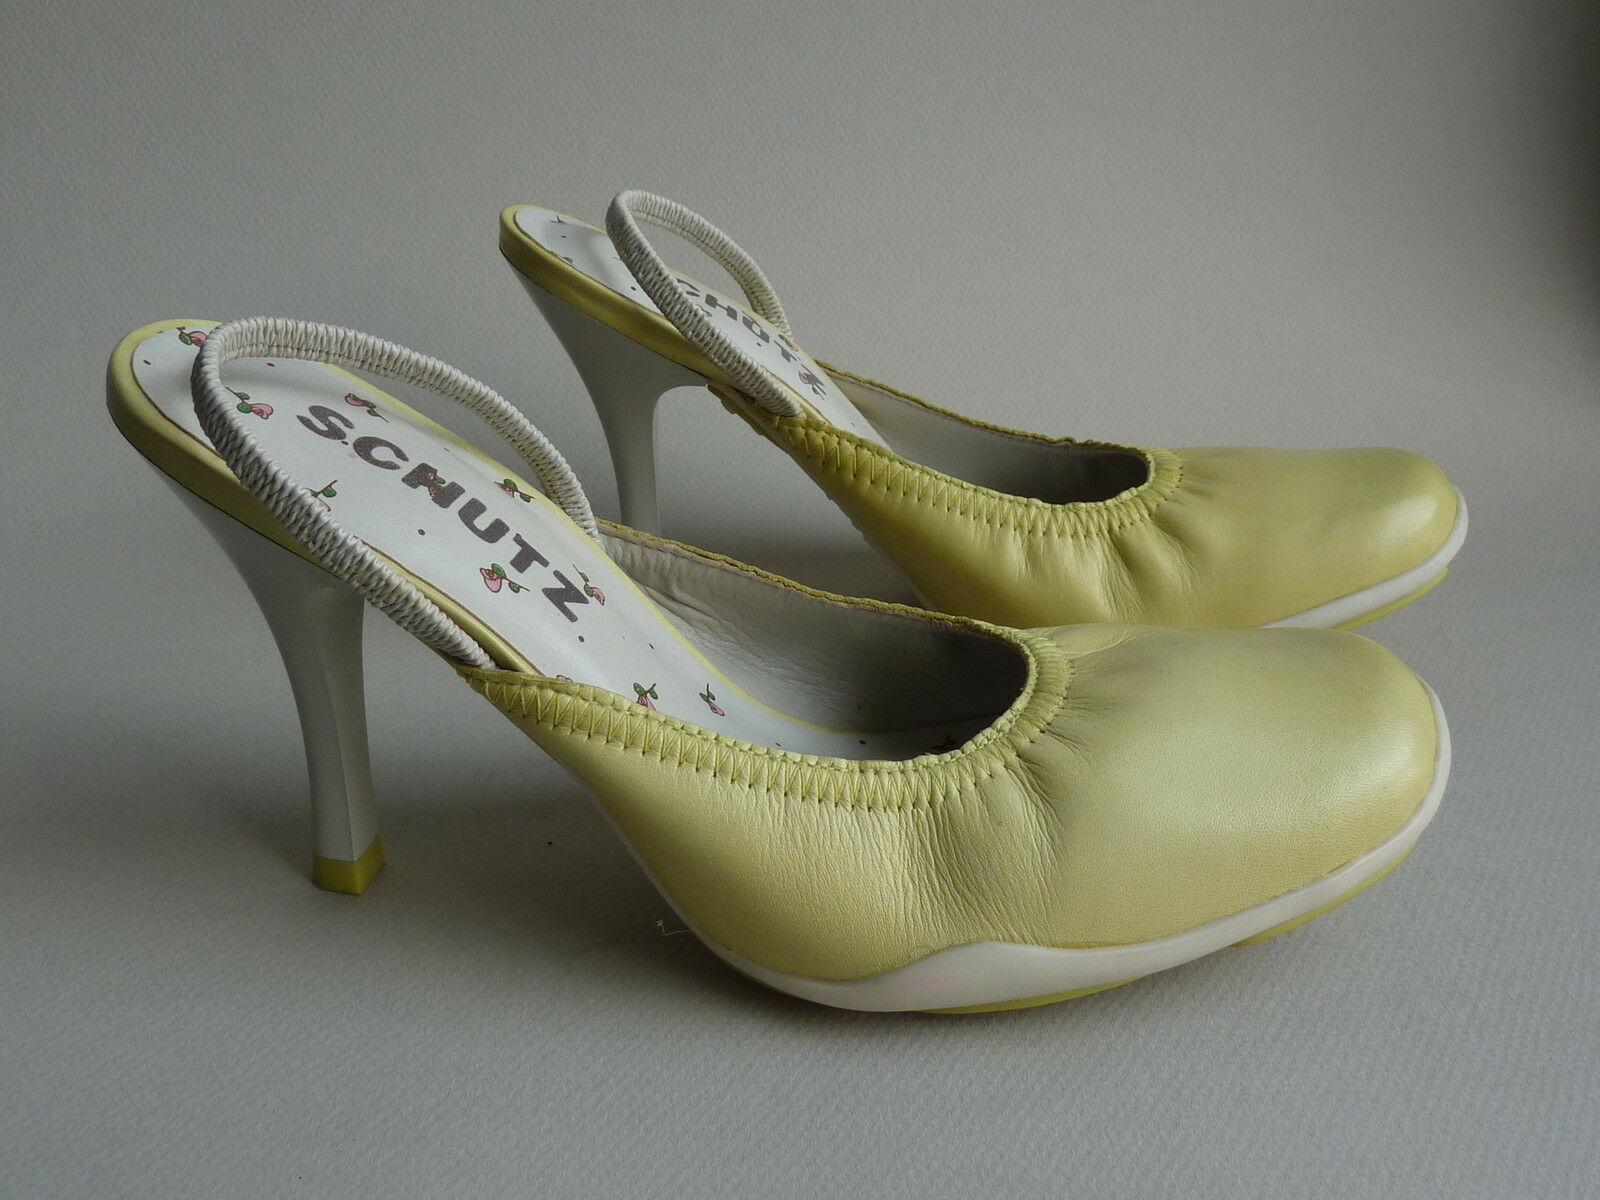 Schutz Slingbacks, NIB, Retail 99.00, sizes 6,8,9,10